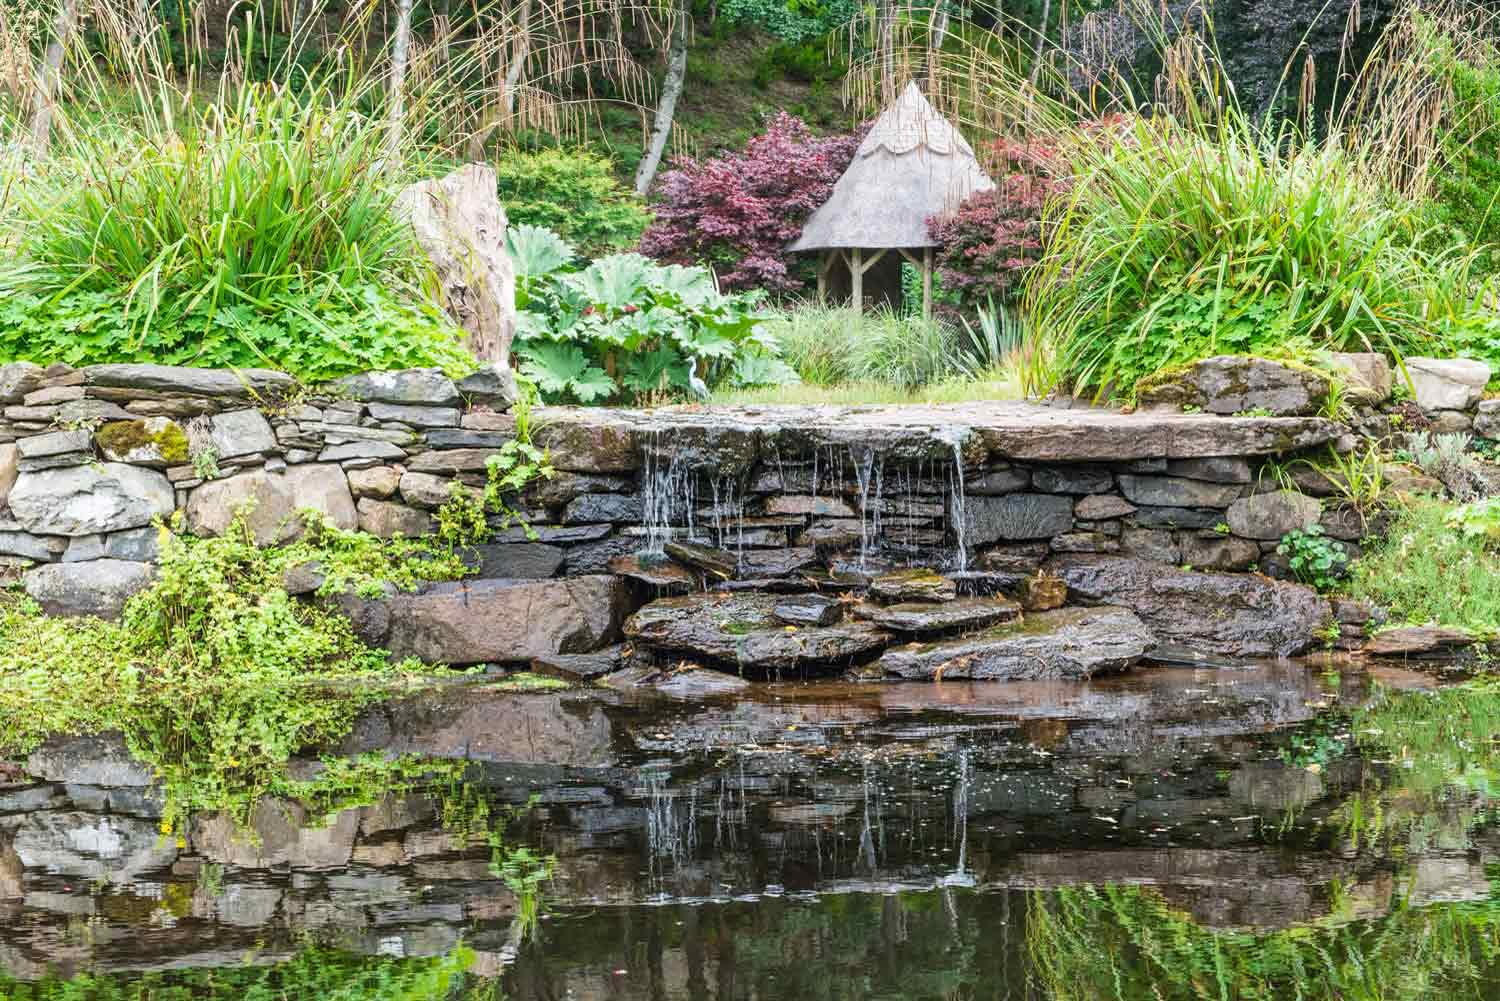 This waterfall feature created from drystone walls blends sympathetically with the landscape bringing a natural, soothing vibe to this beautiful Scottish garden.